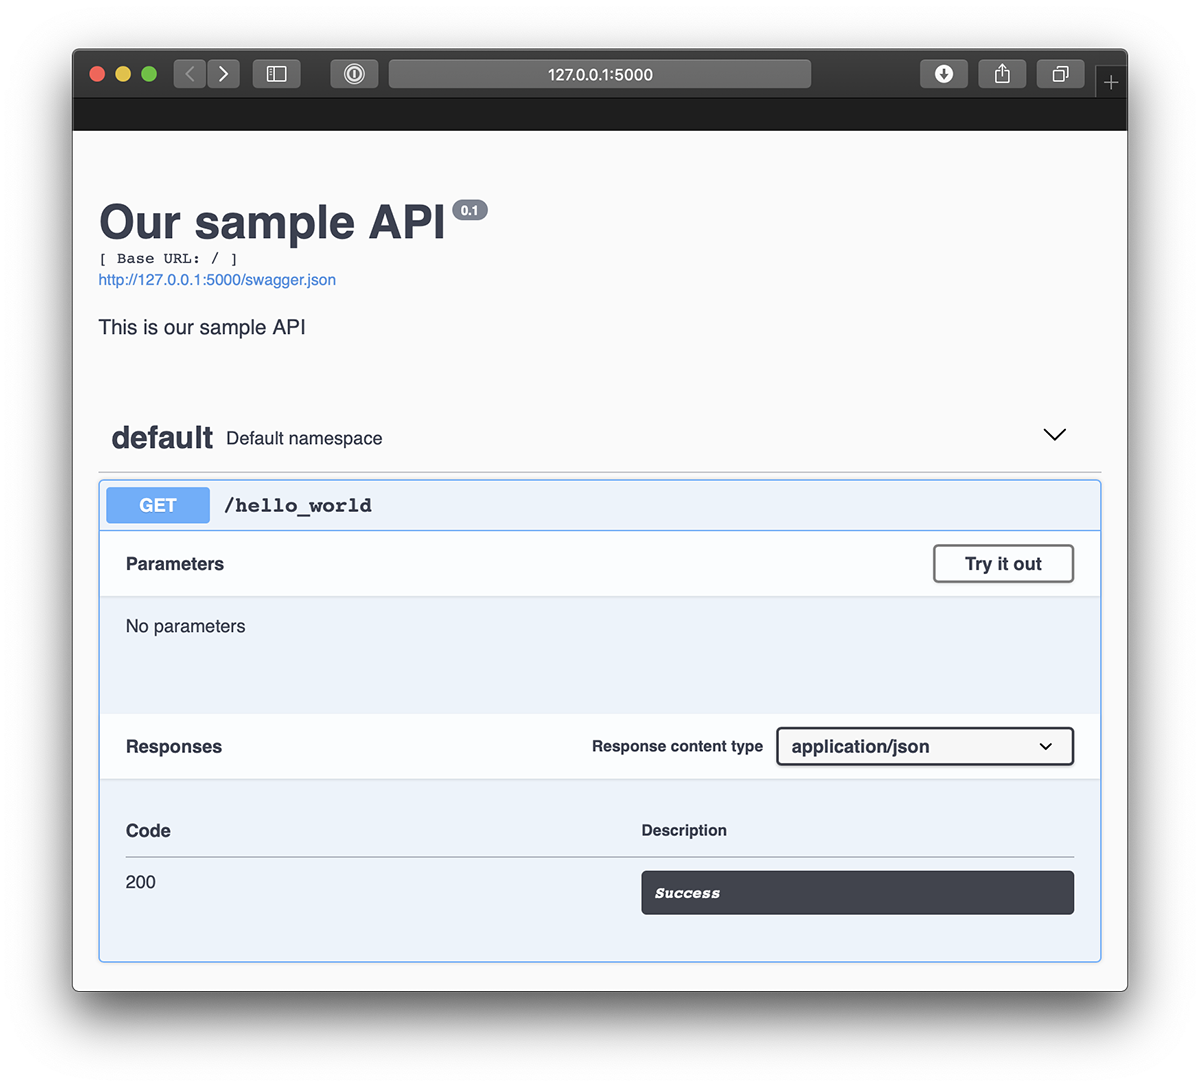 Sample API